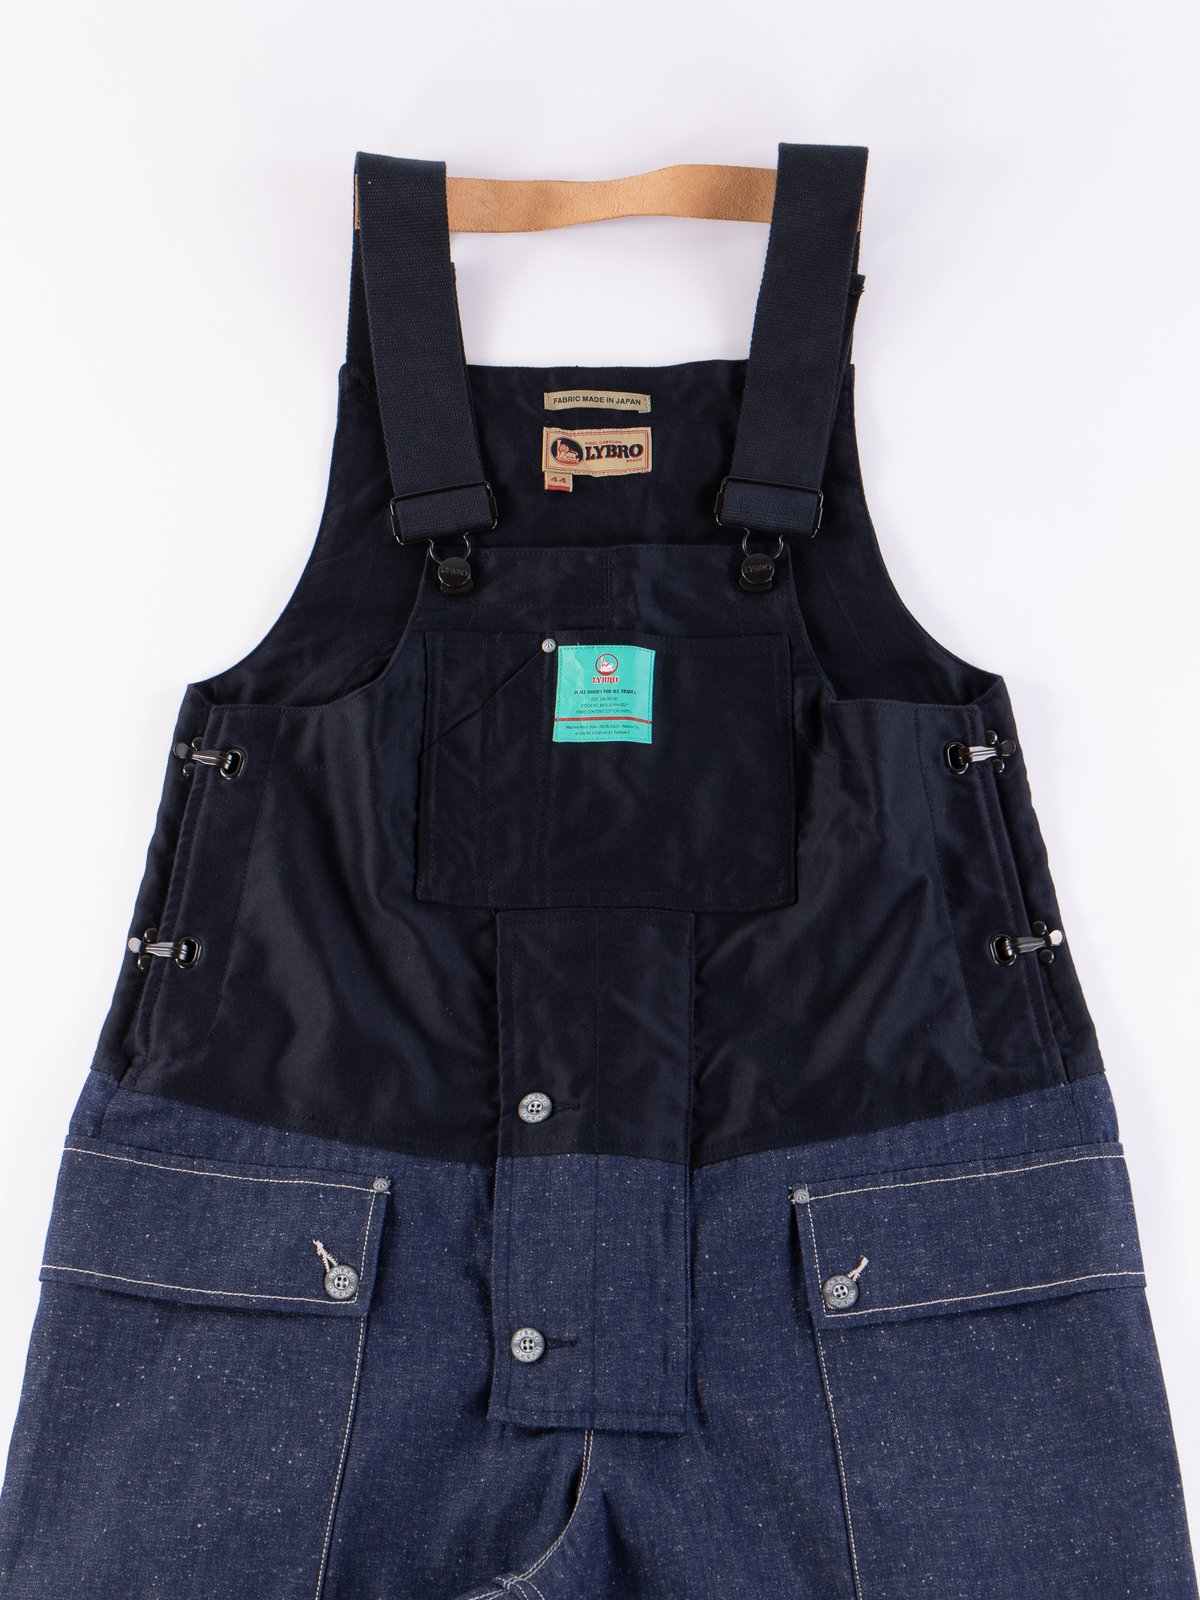 Lybro Split Denim/Navy Sateen Naval Dungaree - Image 3